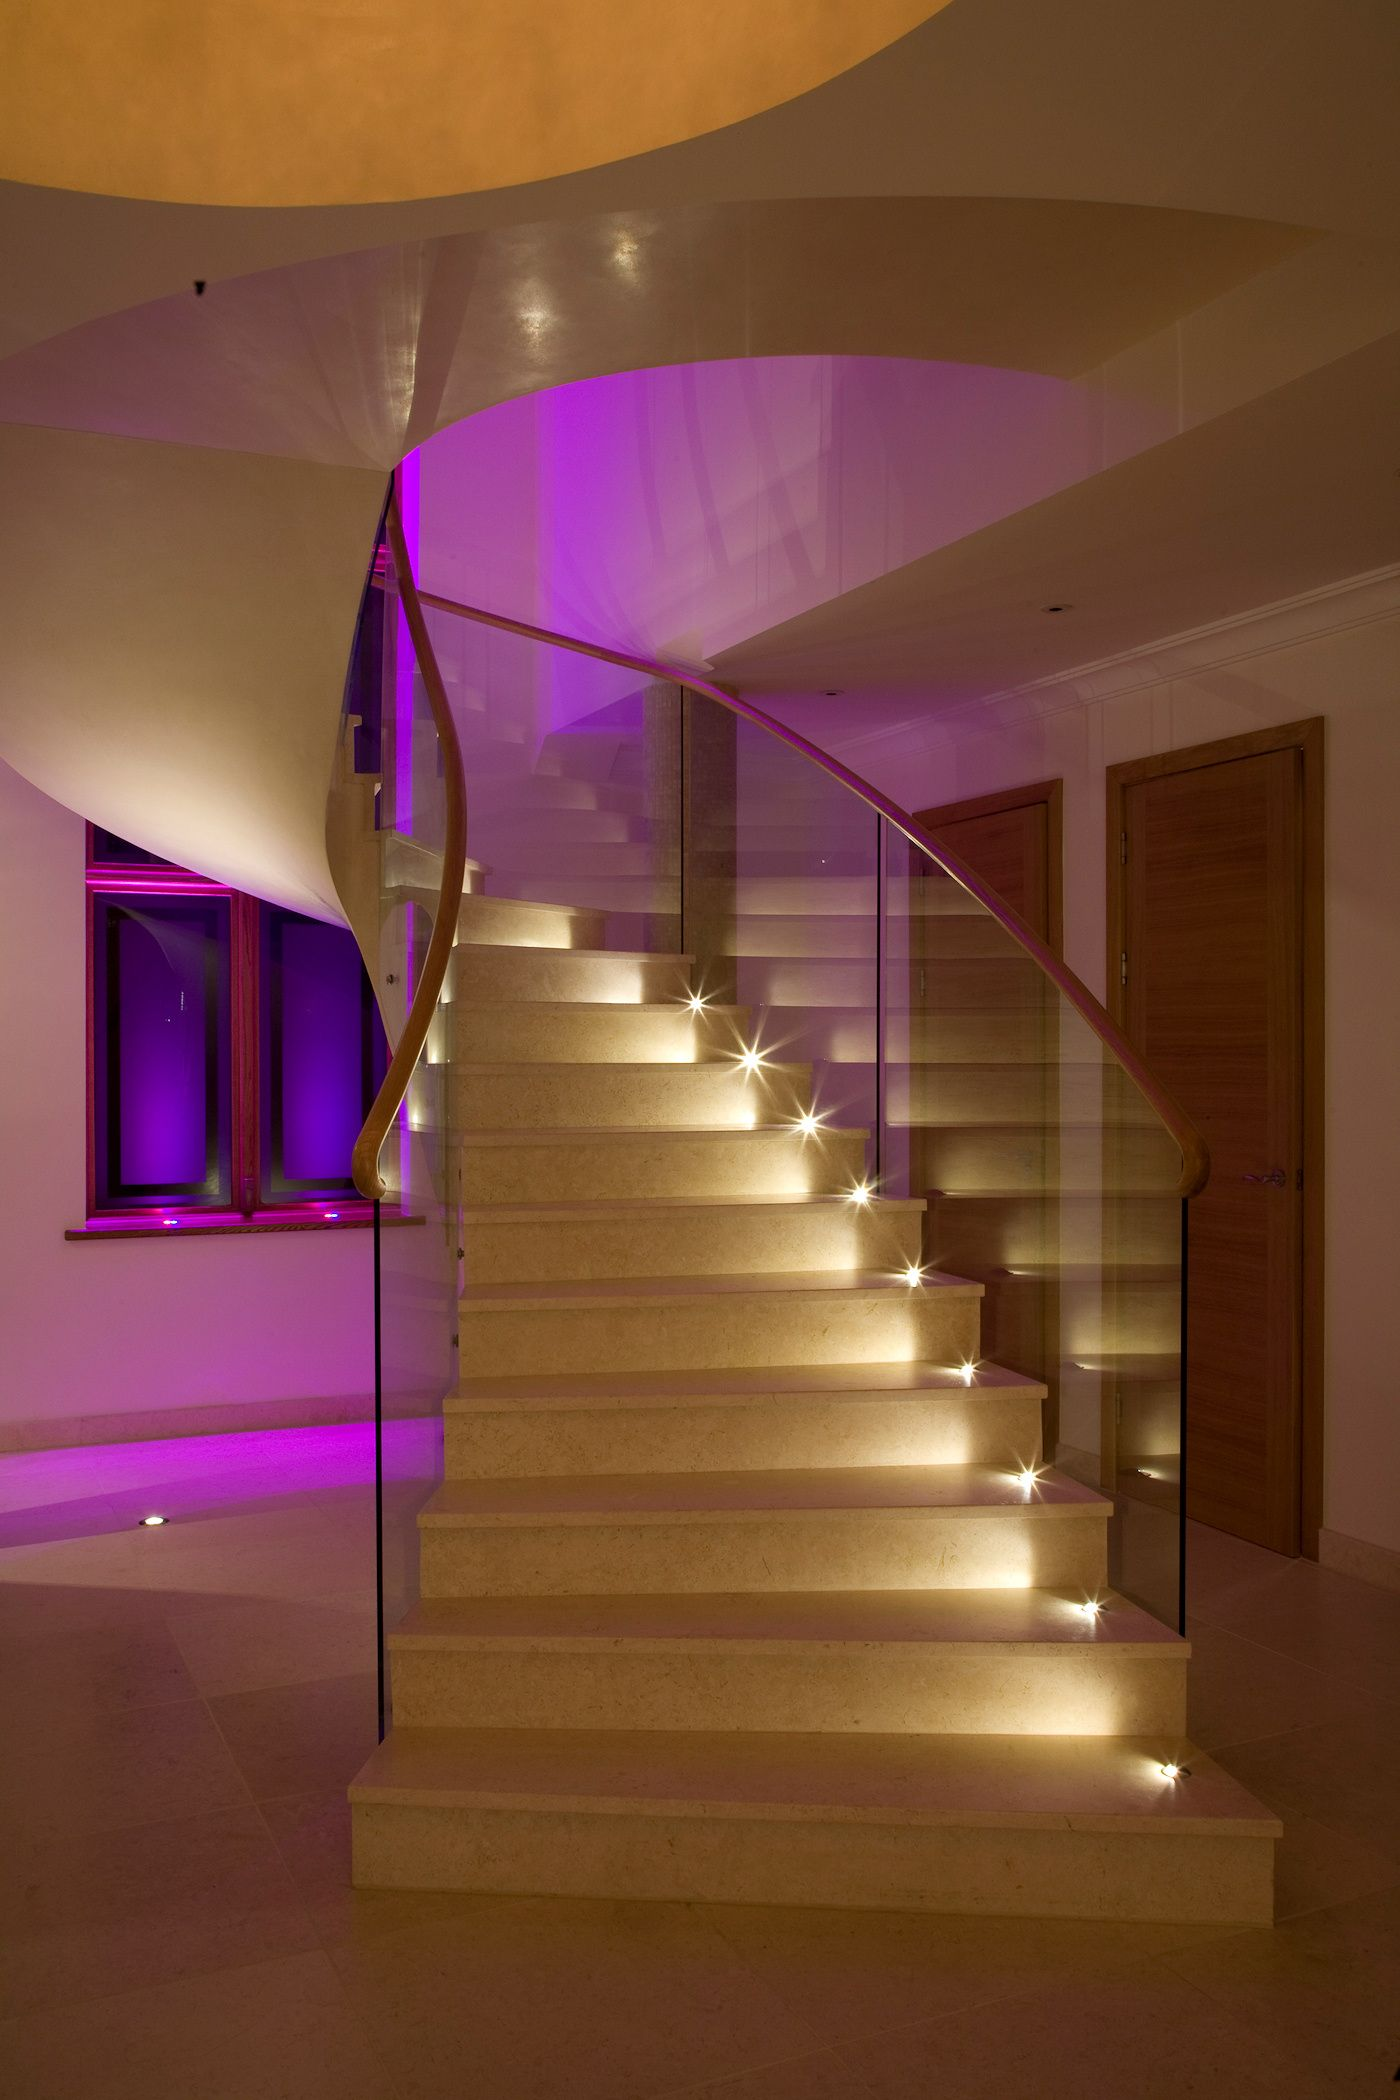 This blog is called 13 extremely good staircase lighting ideas for your home & This blog is called 13 extremely good staircase lighting ideas for ... azcodes.com